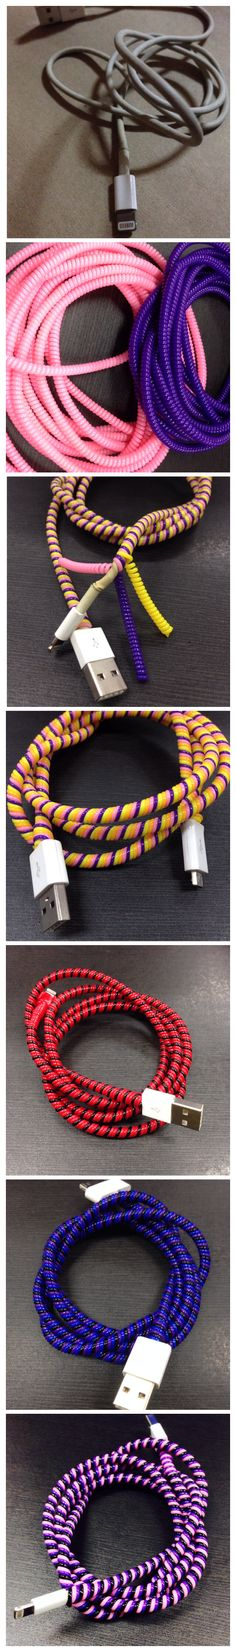 DIY cord protector for all kinds of wires :) (chargers,earphones,etc) #iphone #iphoneproblems